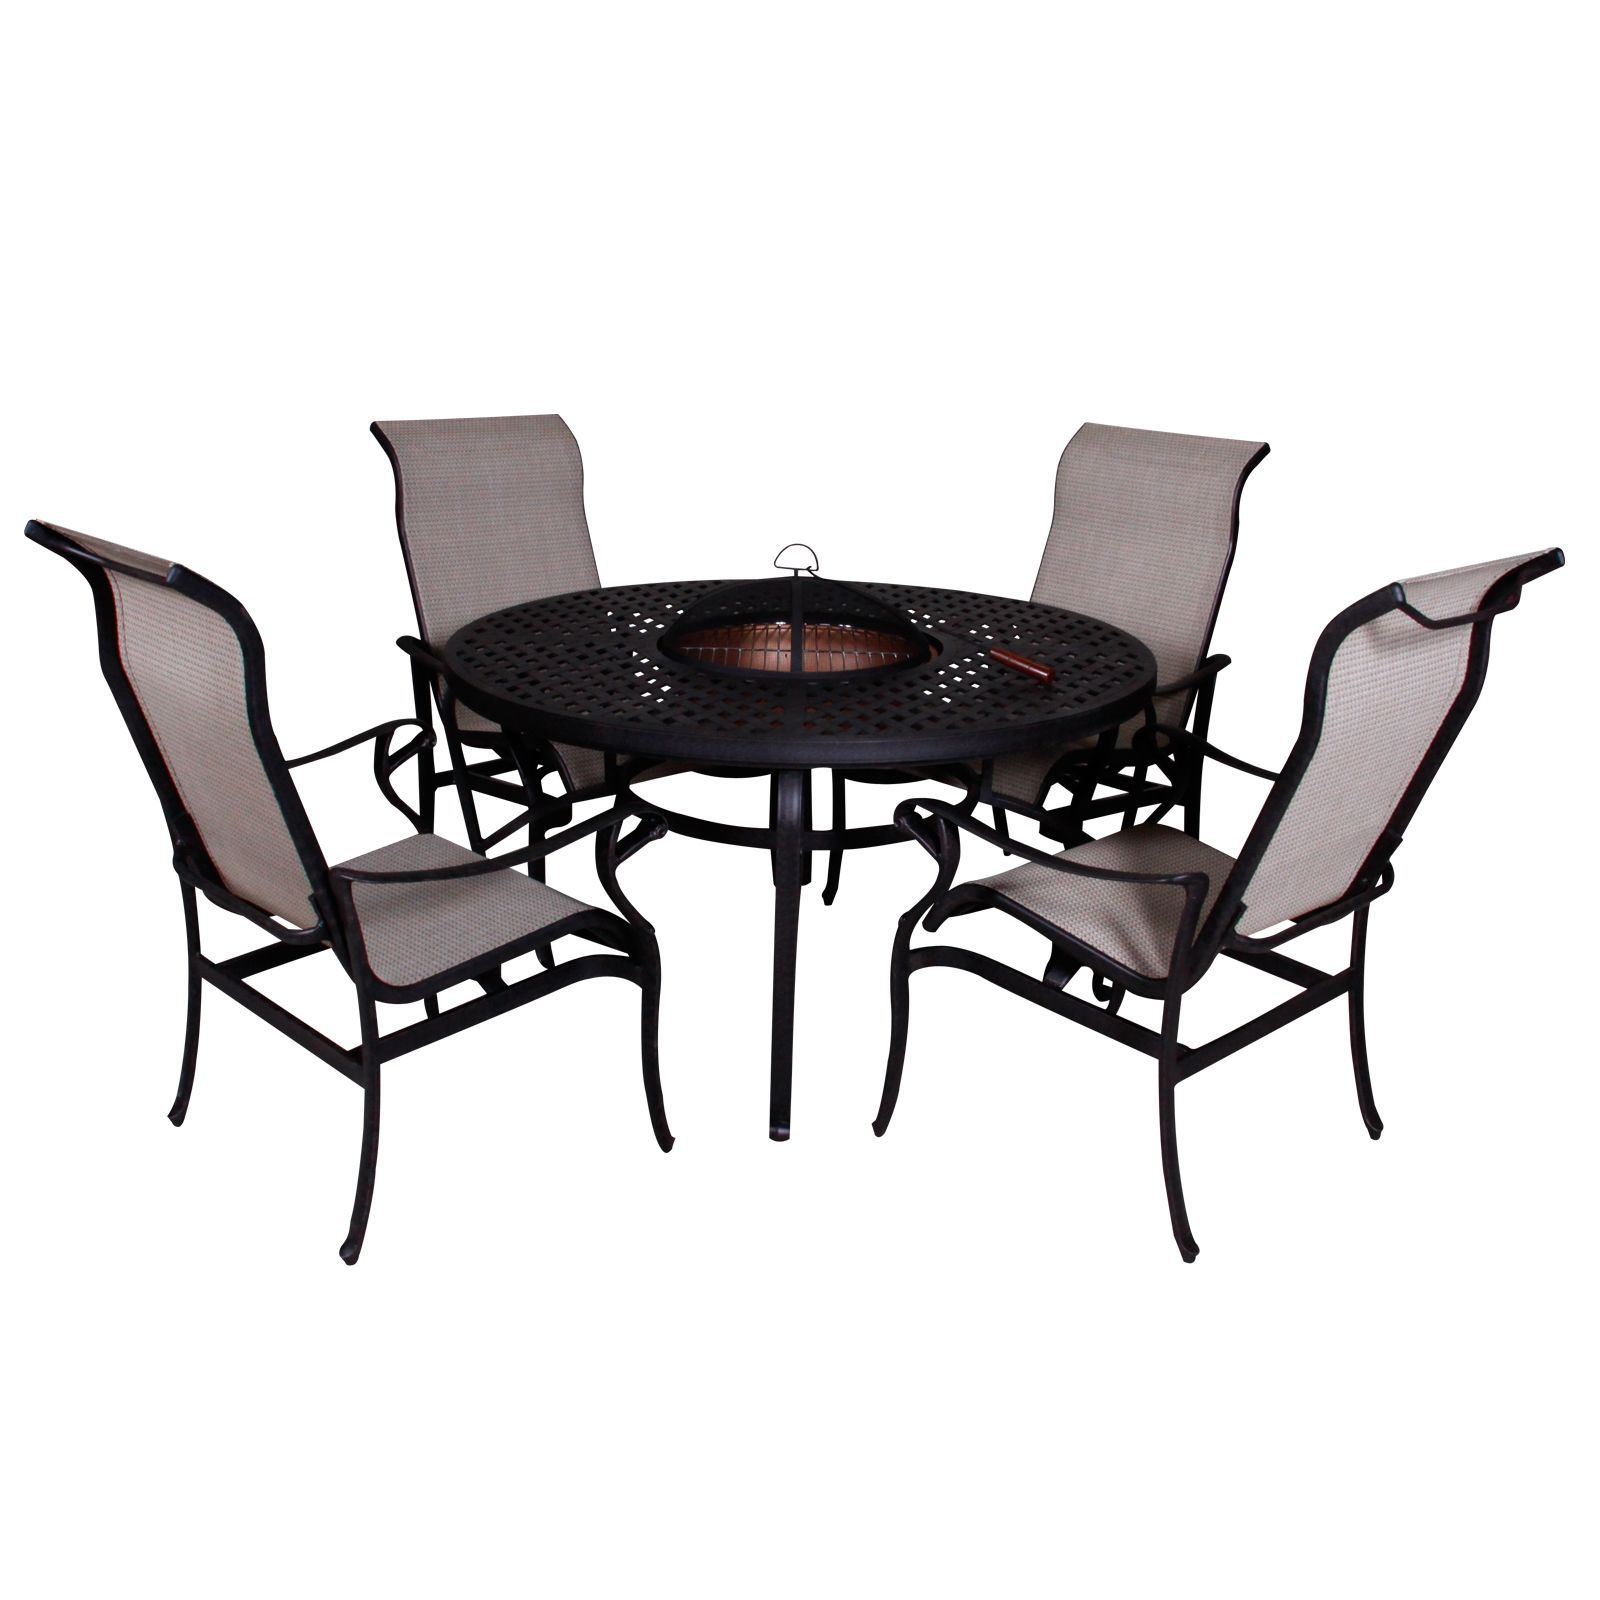 Lorraine Dining Height Fire Pit Table and Chairs (5piece